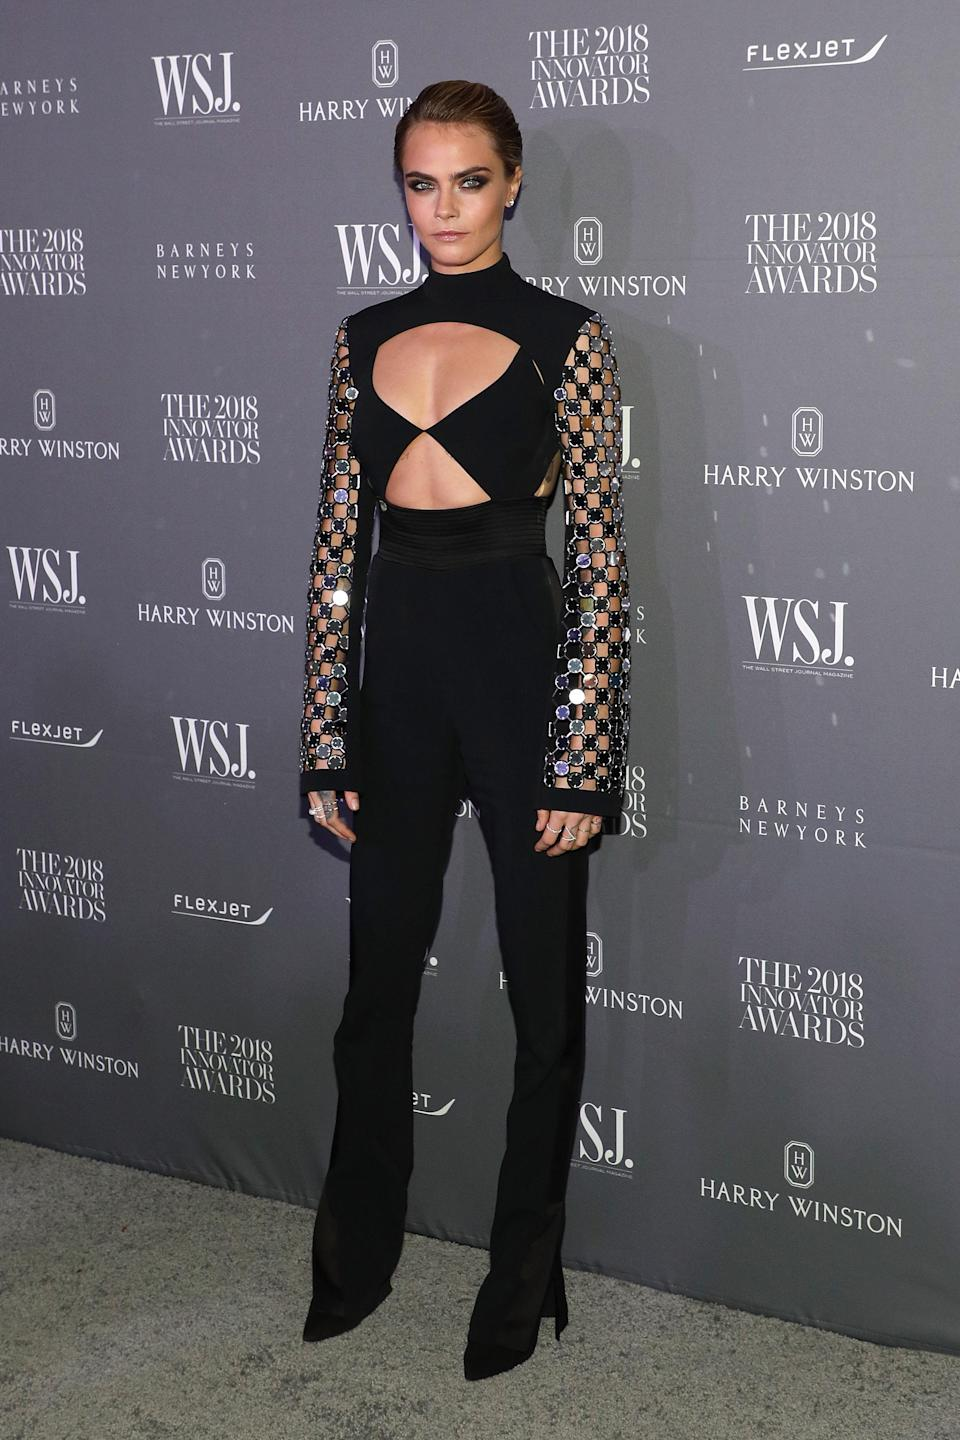 <p>Wearing a look by London Fashion Week label David Koma, the model proved she really can wear anything and make it work at the Innovator Awards. <em>[Photo: Getty]</em> </p>